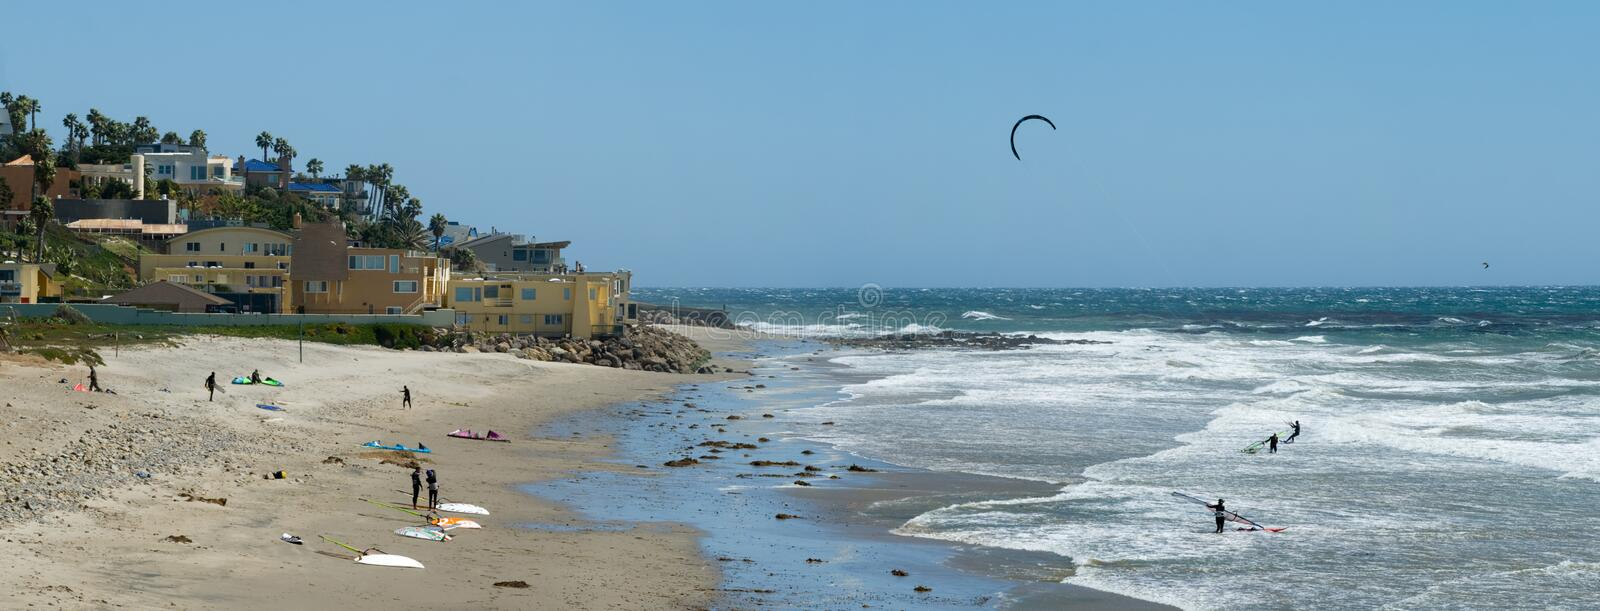 Kiteboarding and Wind Surfing in California. A Southern California beach popular with windsurfers and kite boarders royalty free stock image